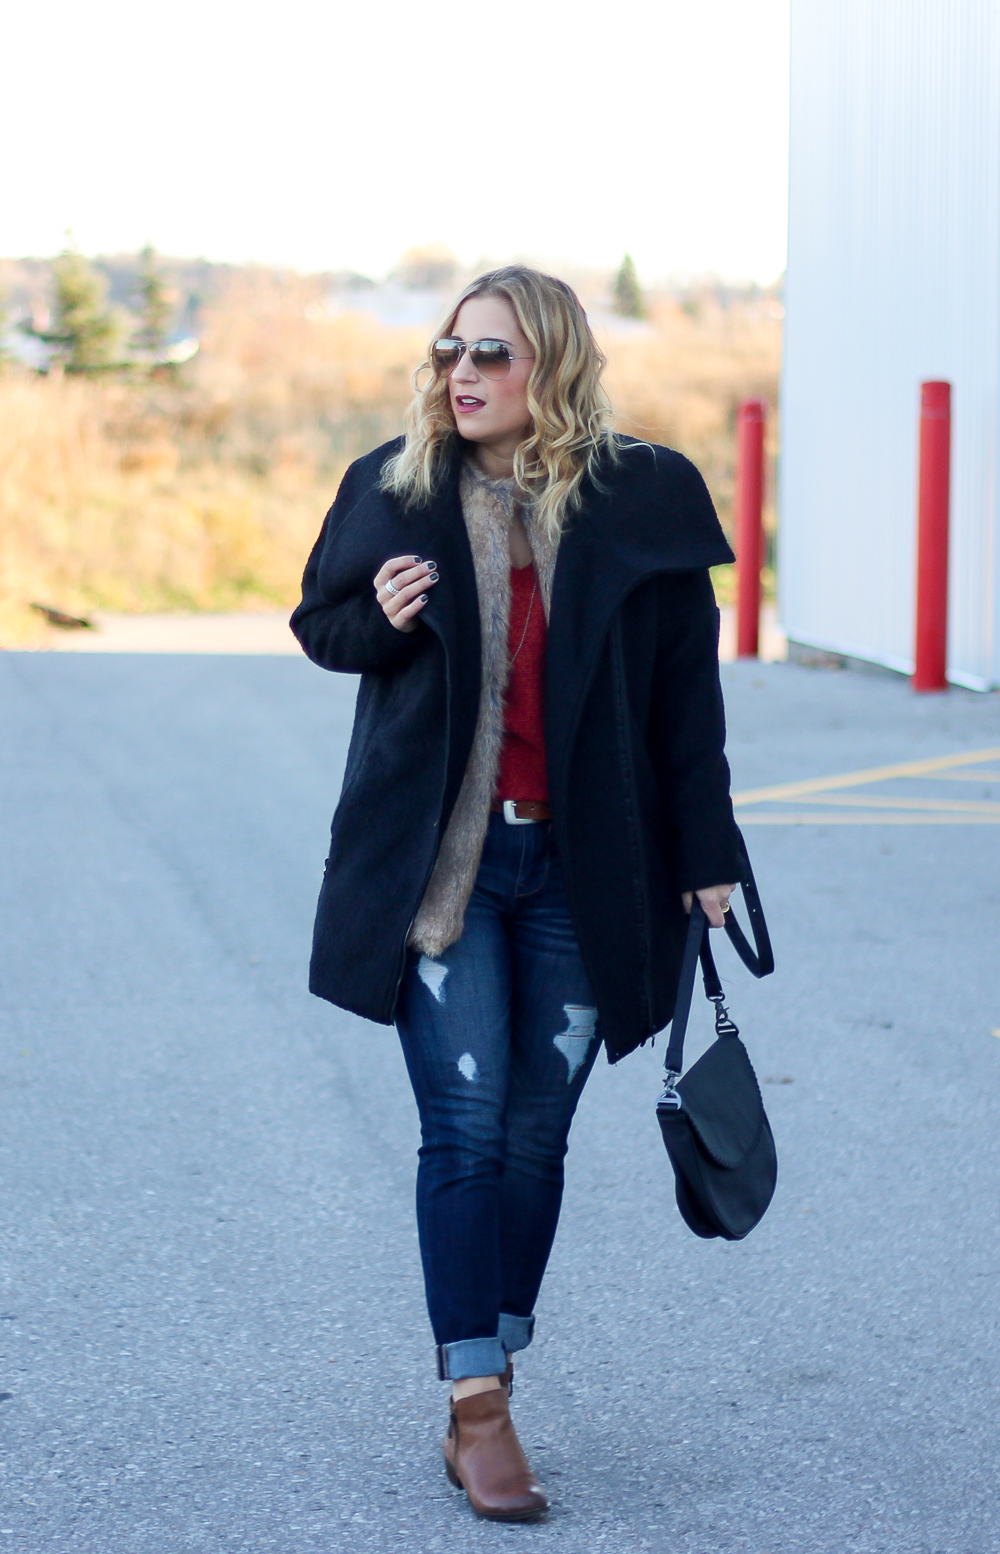 Canadian fashion and lifestyle blogger, Jackie Goldhar, sharing an outfit that features a Bench jacket with an exaggerated, oversized collar